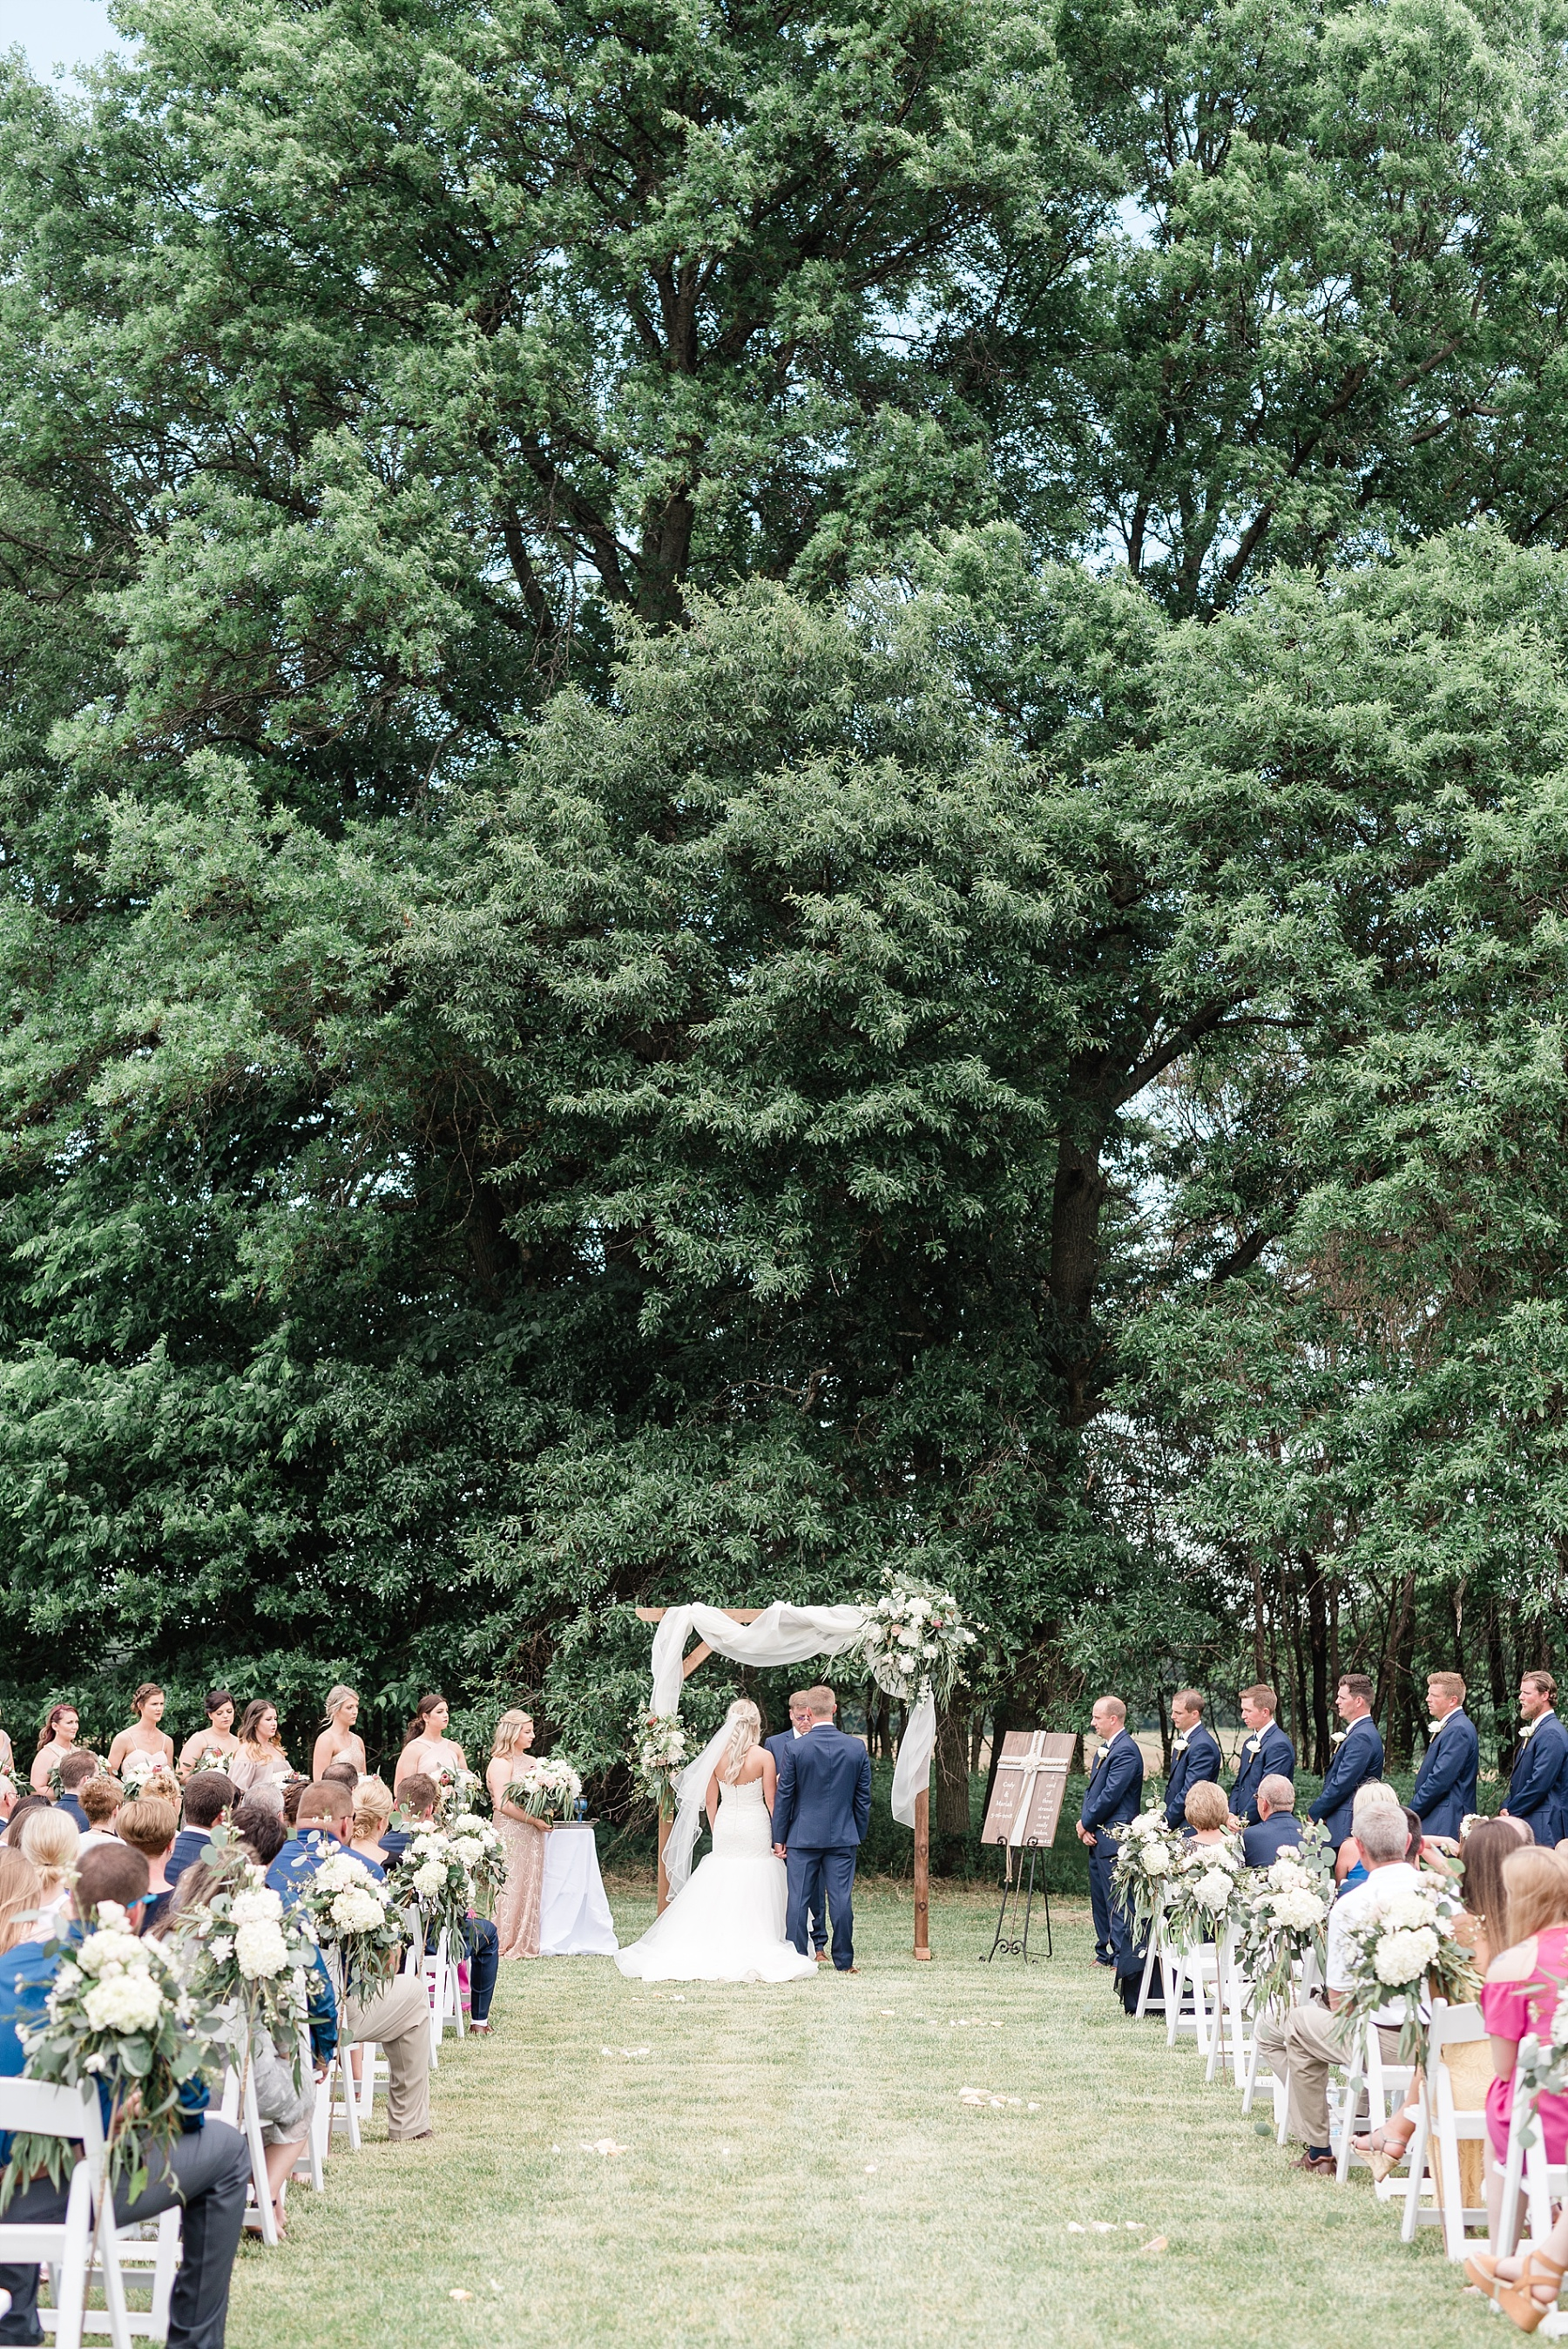 Stunning Heartfelt, Elegant, Fine Art, Chic, Outdoor Spring Wedding with Blush, Cream, Greenery, Rose Gold, and Sequins at Emerson Fields Venue by Kelsi Kliethermes Photography_0051.jpg